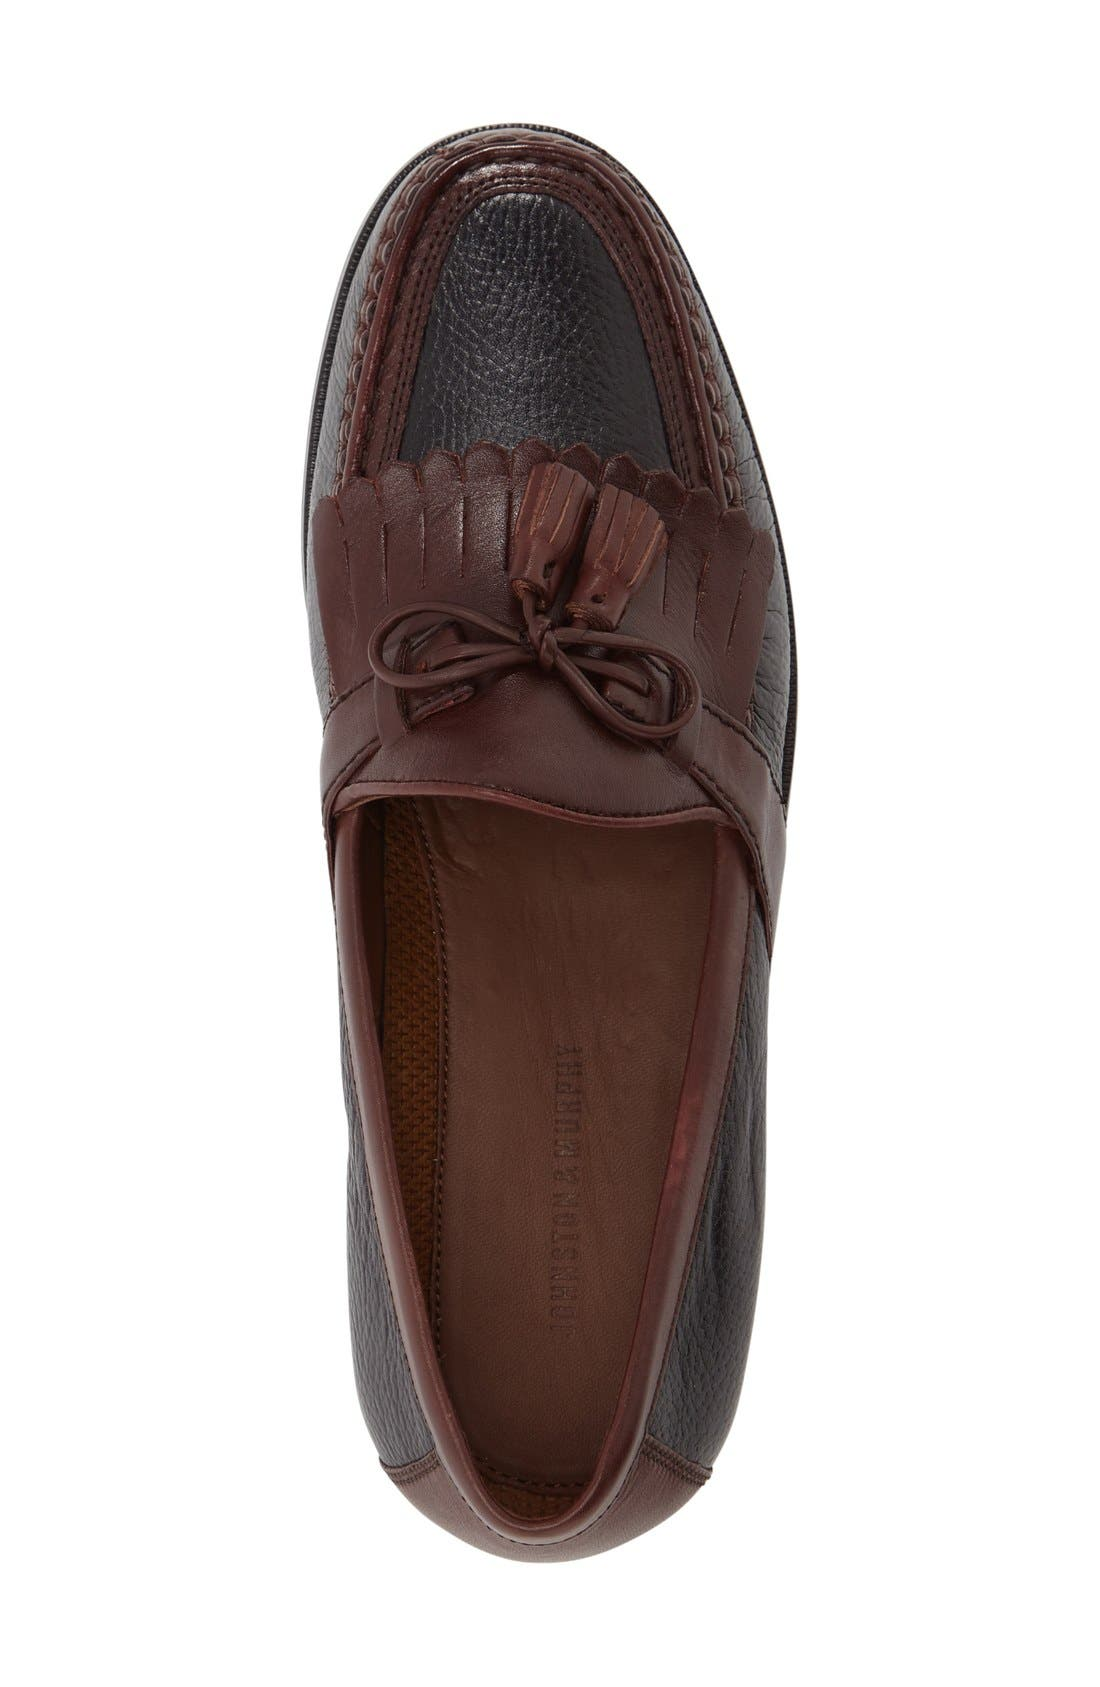 'Aragon II' Loafer,                             Alternate thumbnail 4, color,                             BLACK/ BROWN LEATHER